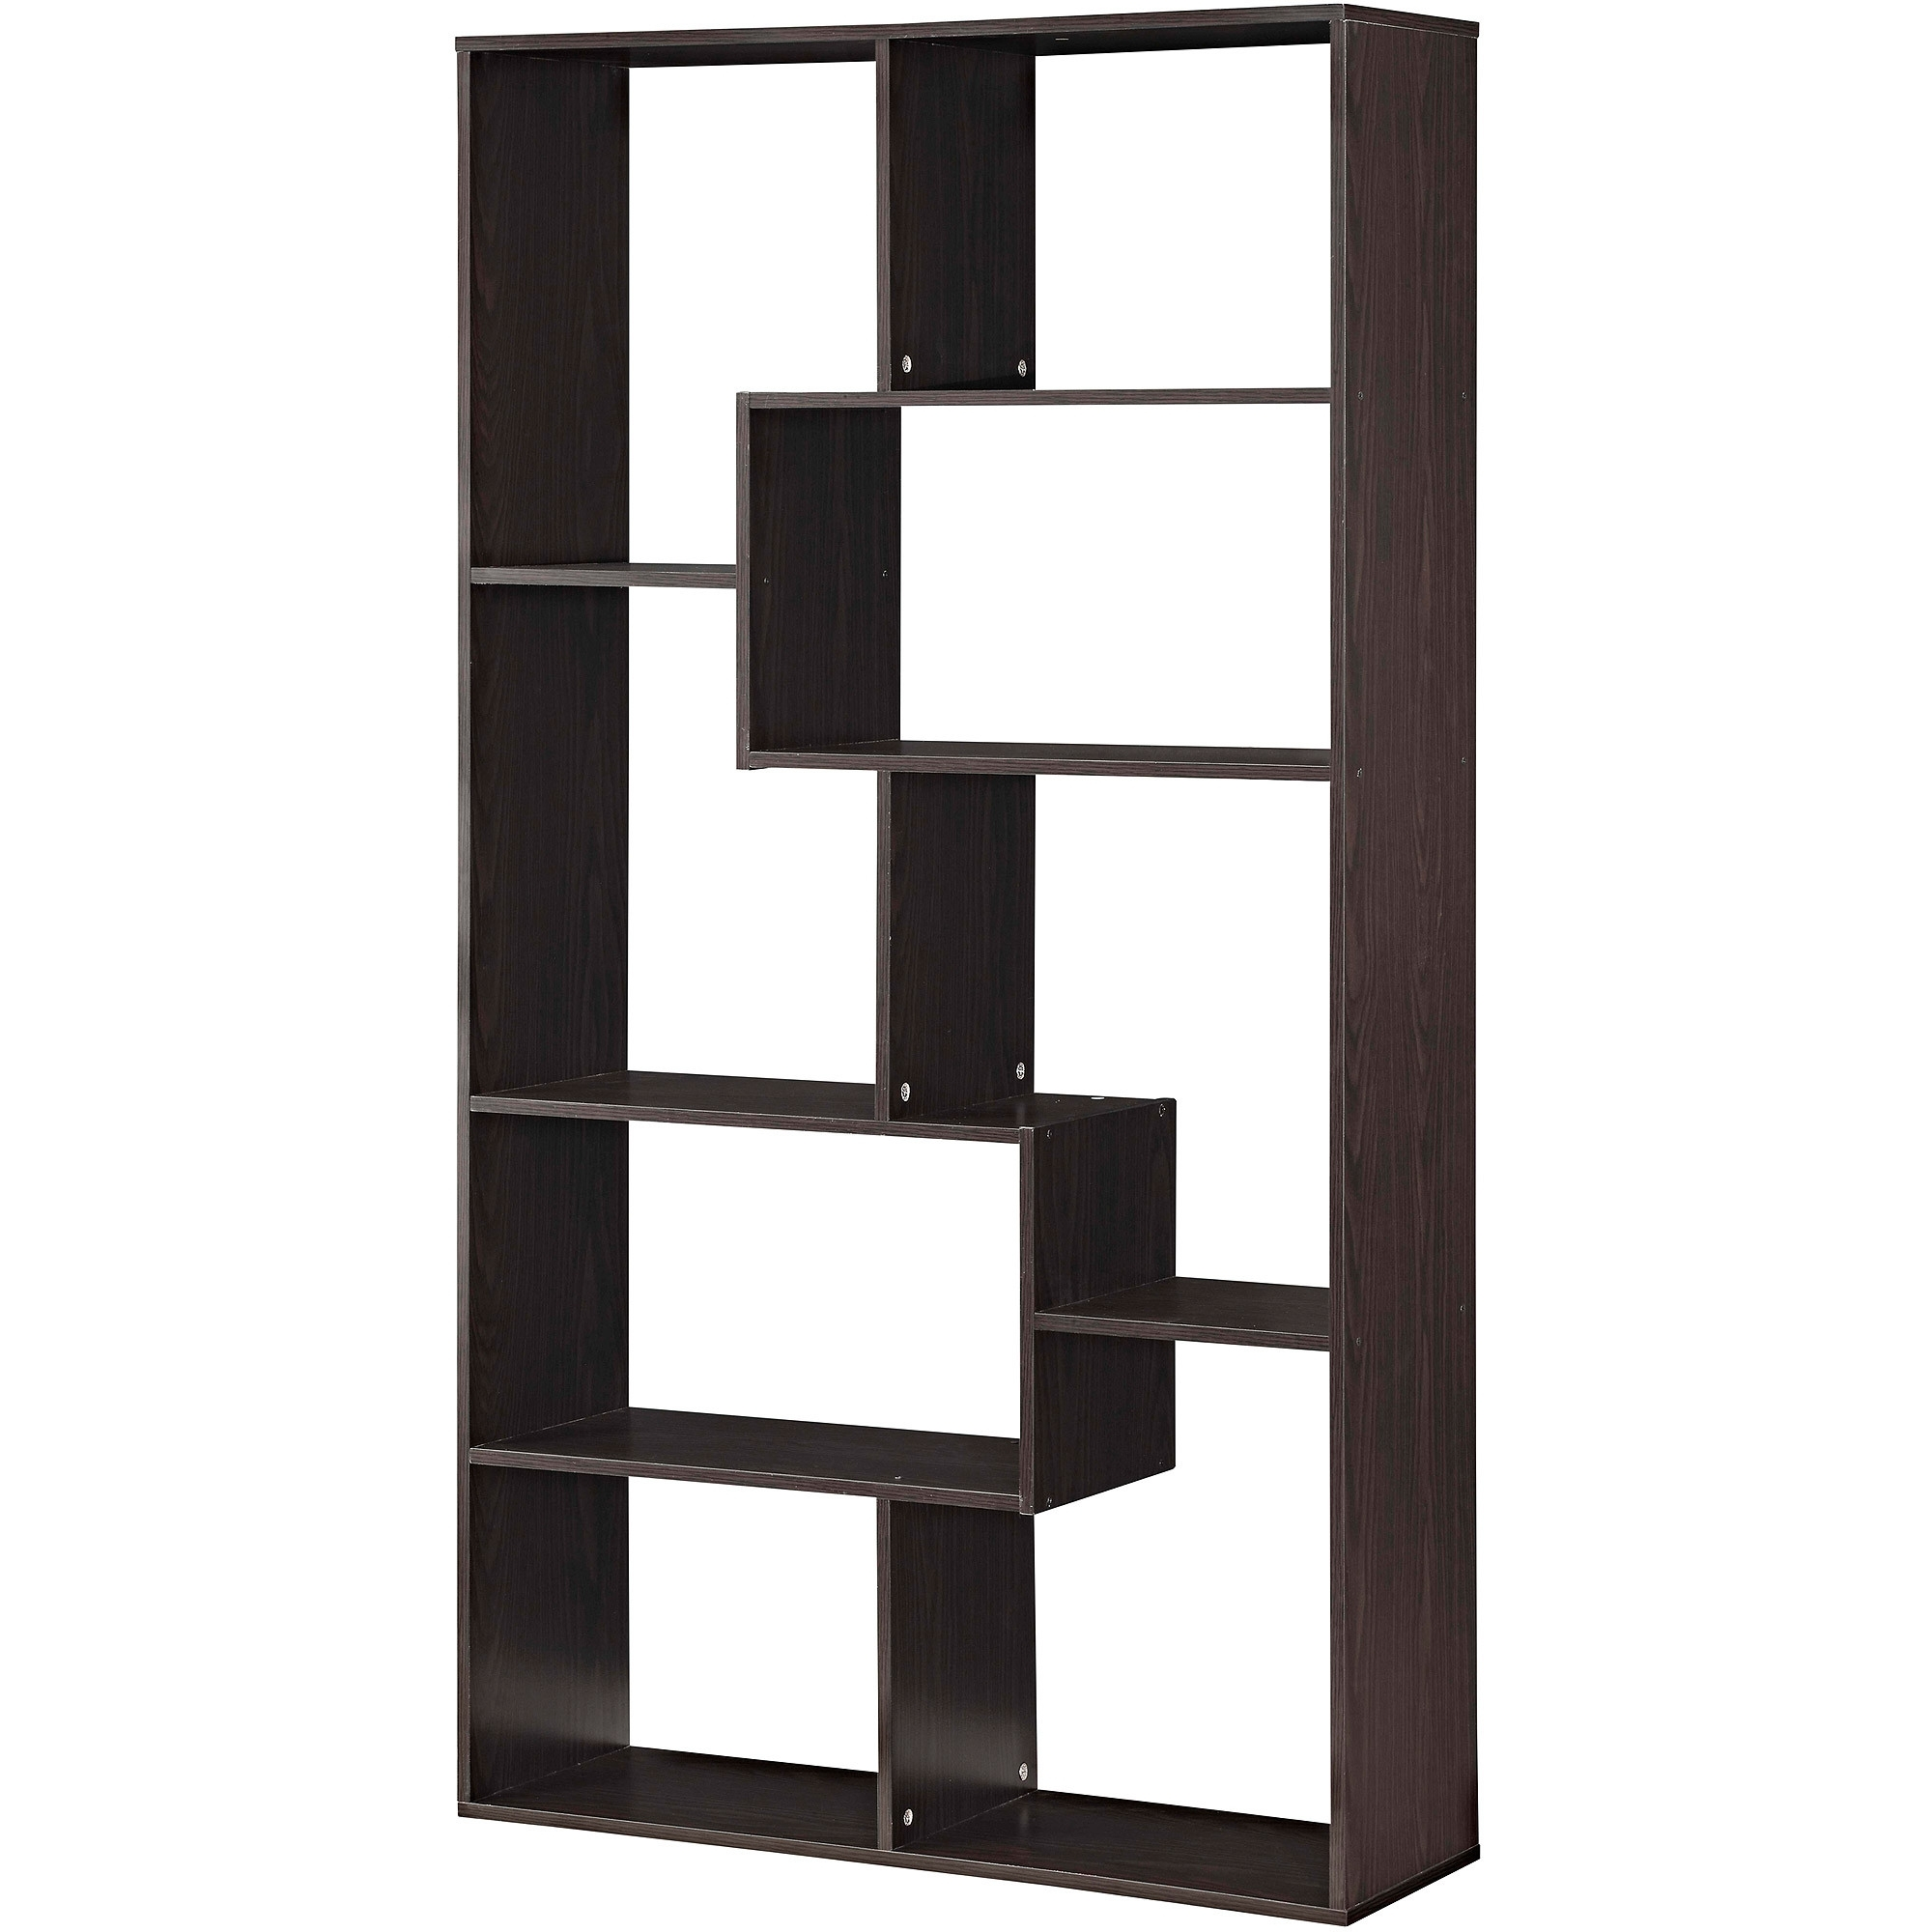 Furniture : Wonderful Bookcases From Walmart Lovely Furniture Nice Intended For Fashionable Black Bookcases Walmart (View 14 of 15)